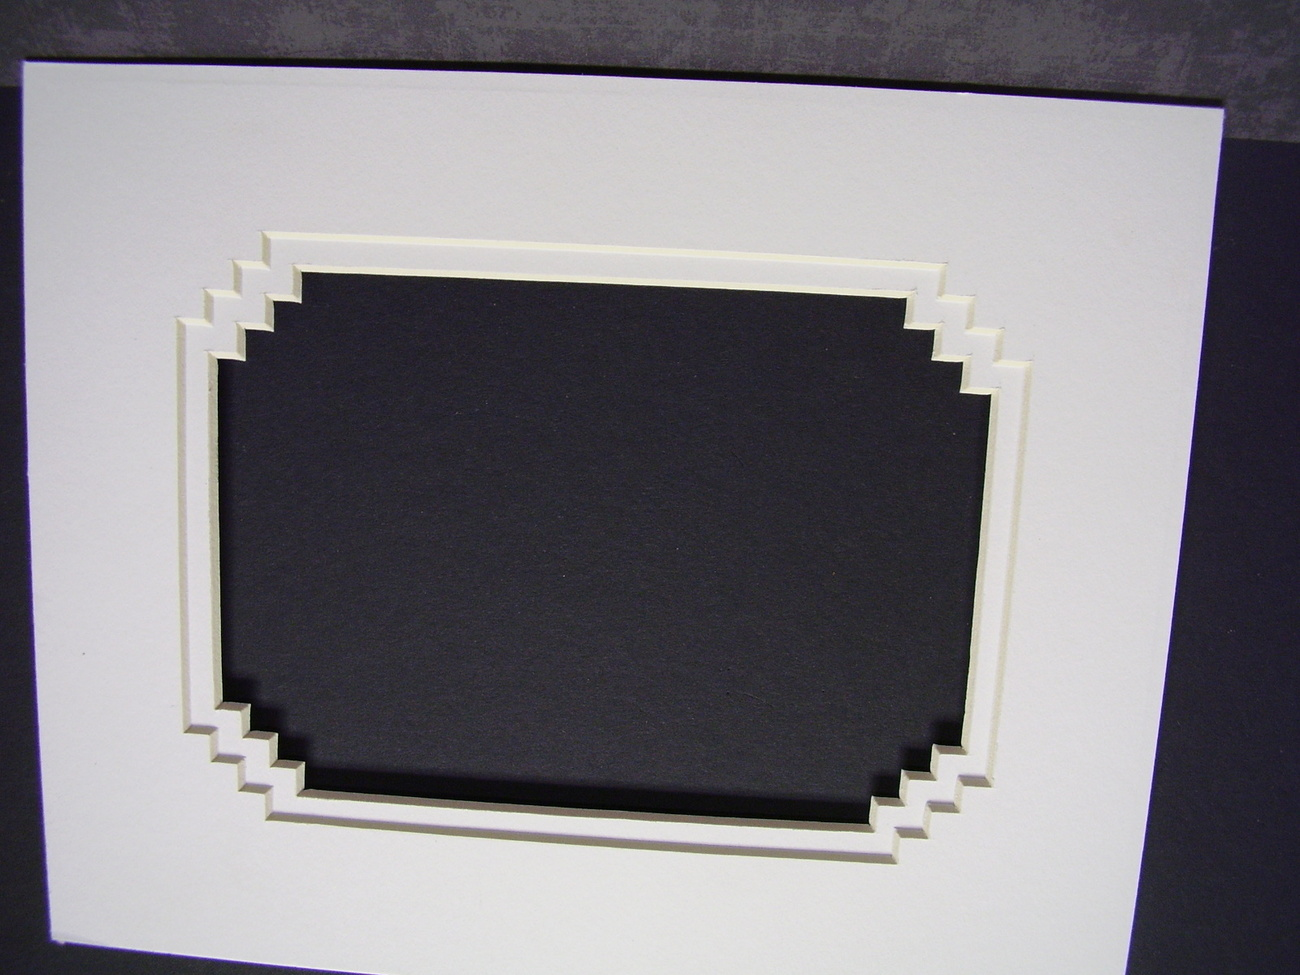 picture framing mats custom cut to your specifications framing mats. Black Bedroom Furniture Sets. Home Design Ideas